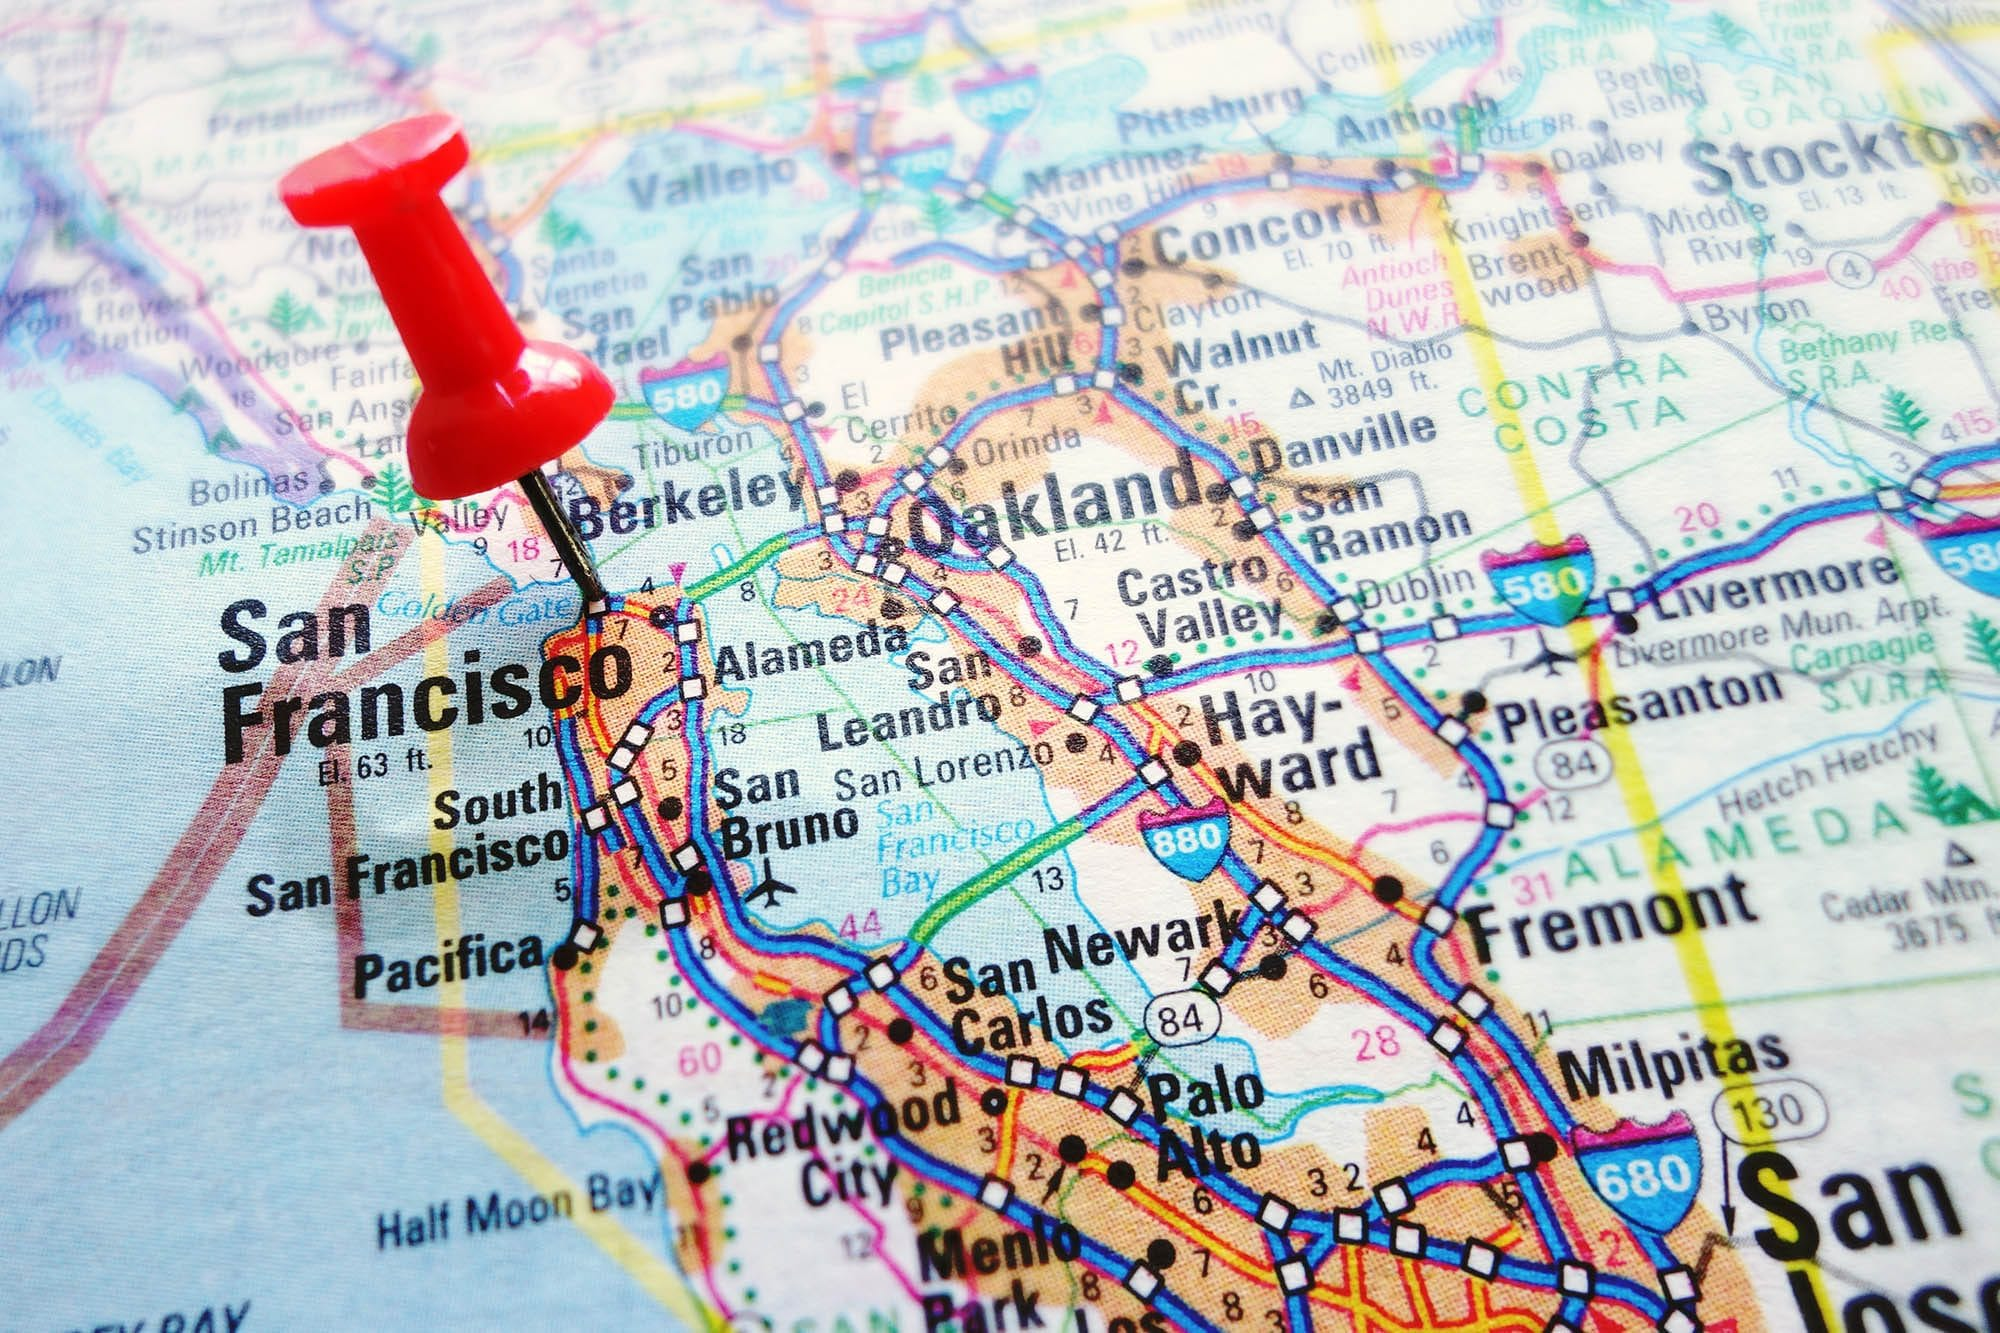 Is Silicon Valley the hottest place on earth?